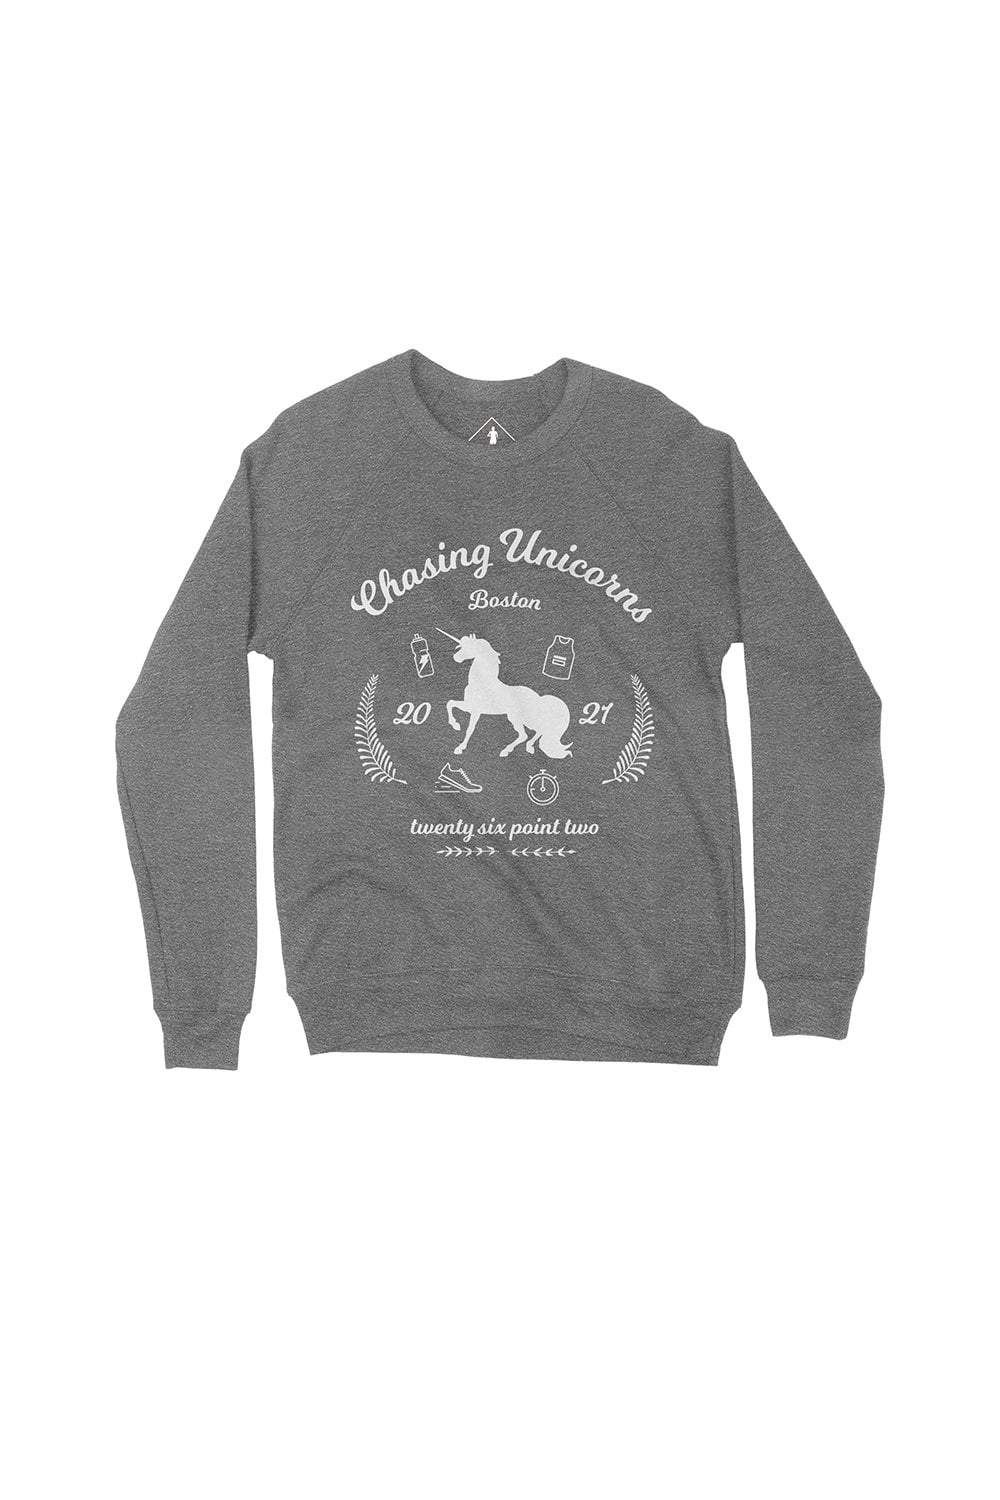 Chasing Unicorns Sweatshirt - Sarah Marie Design Studio